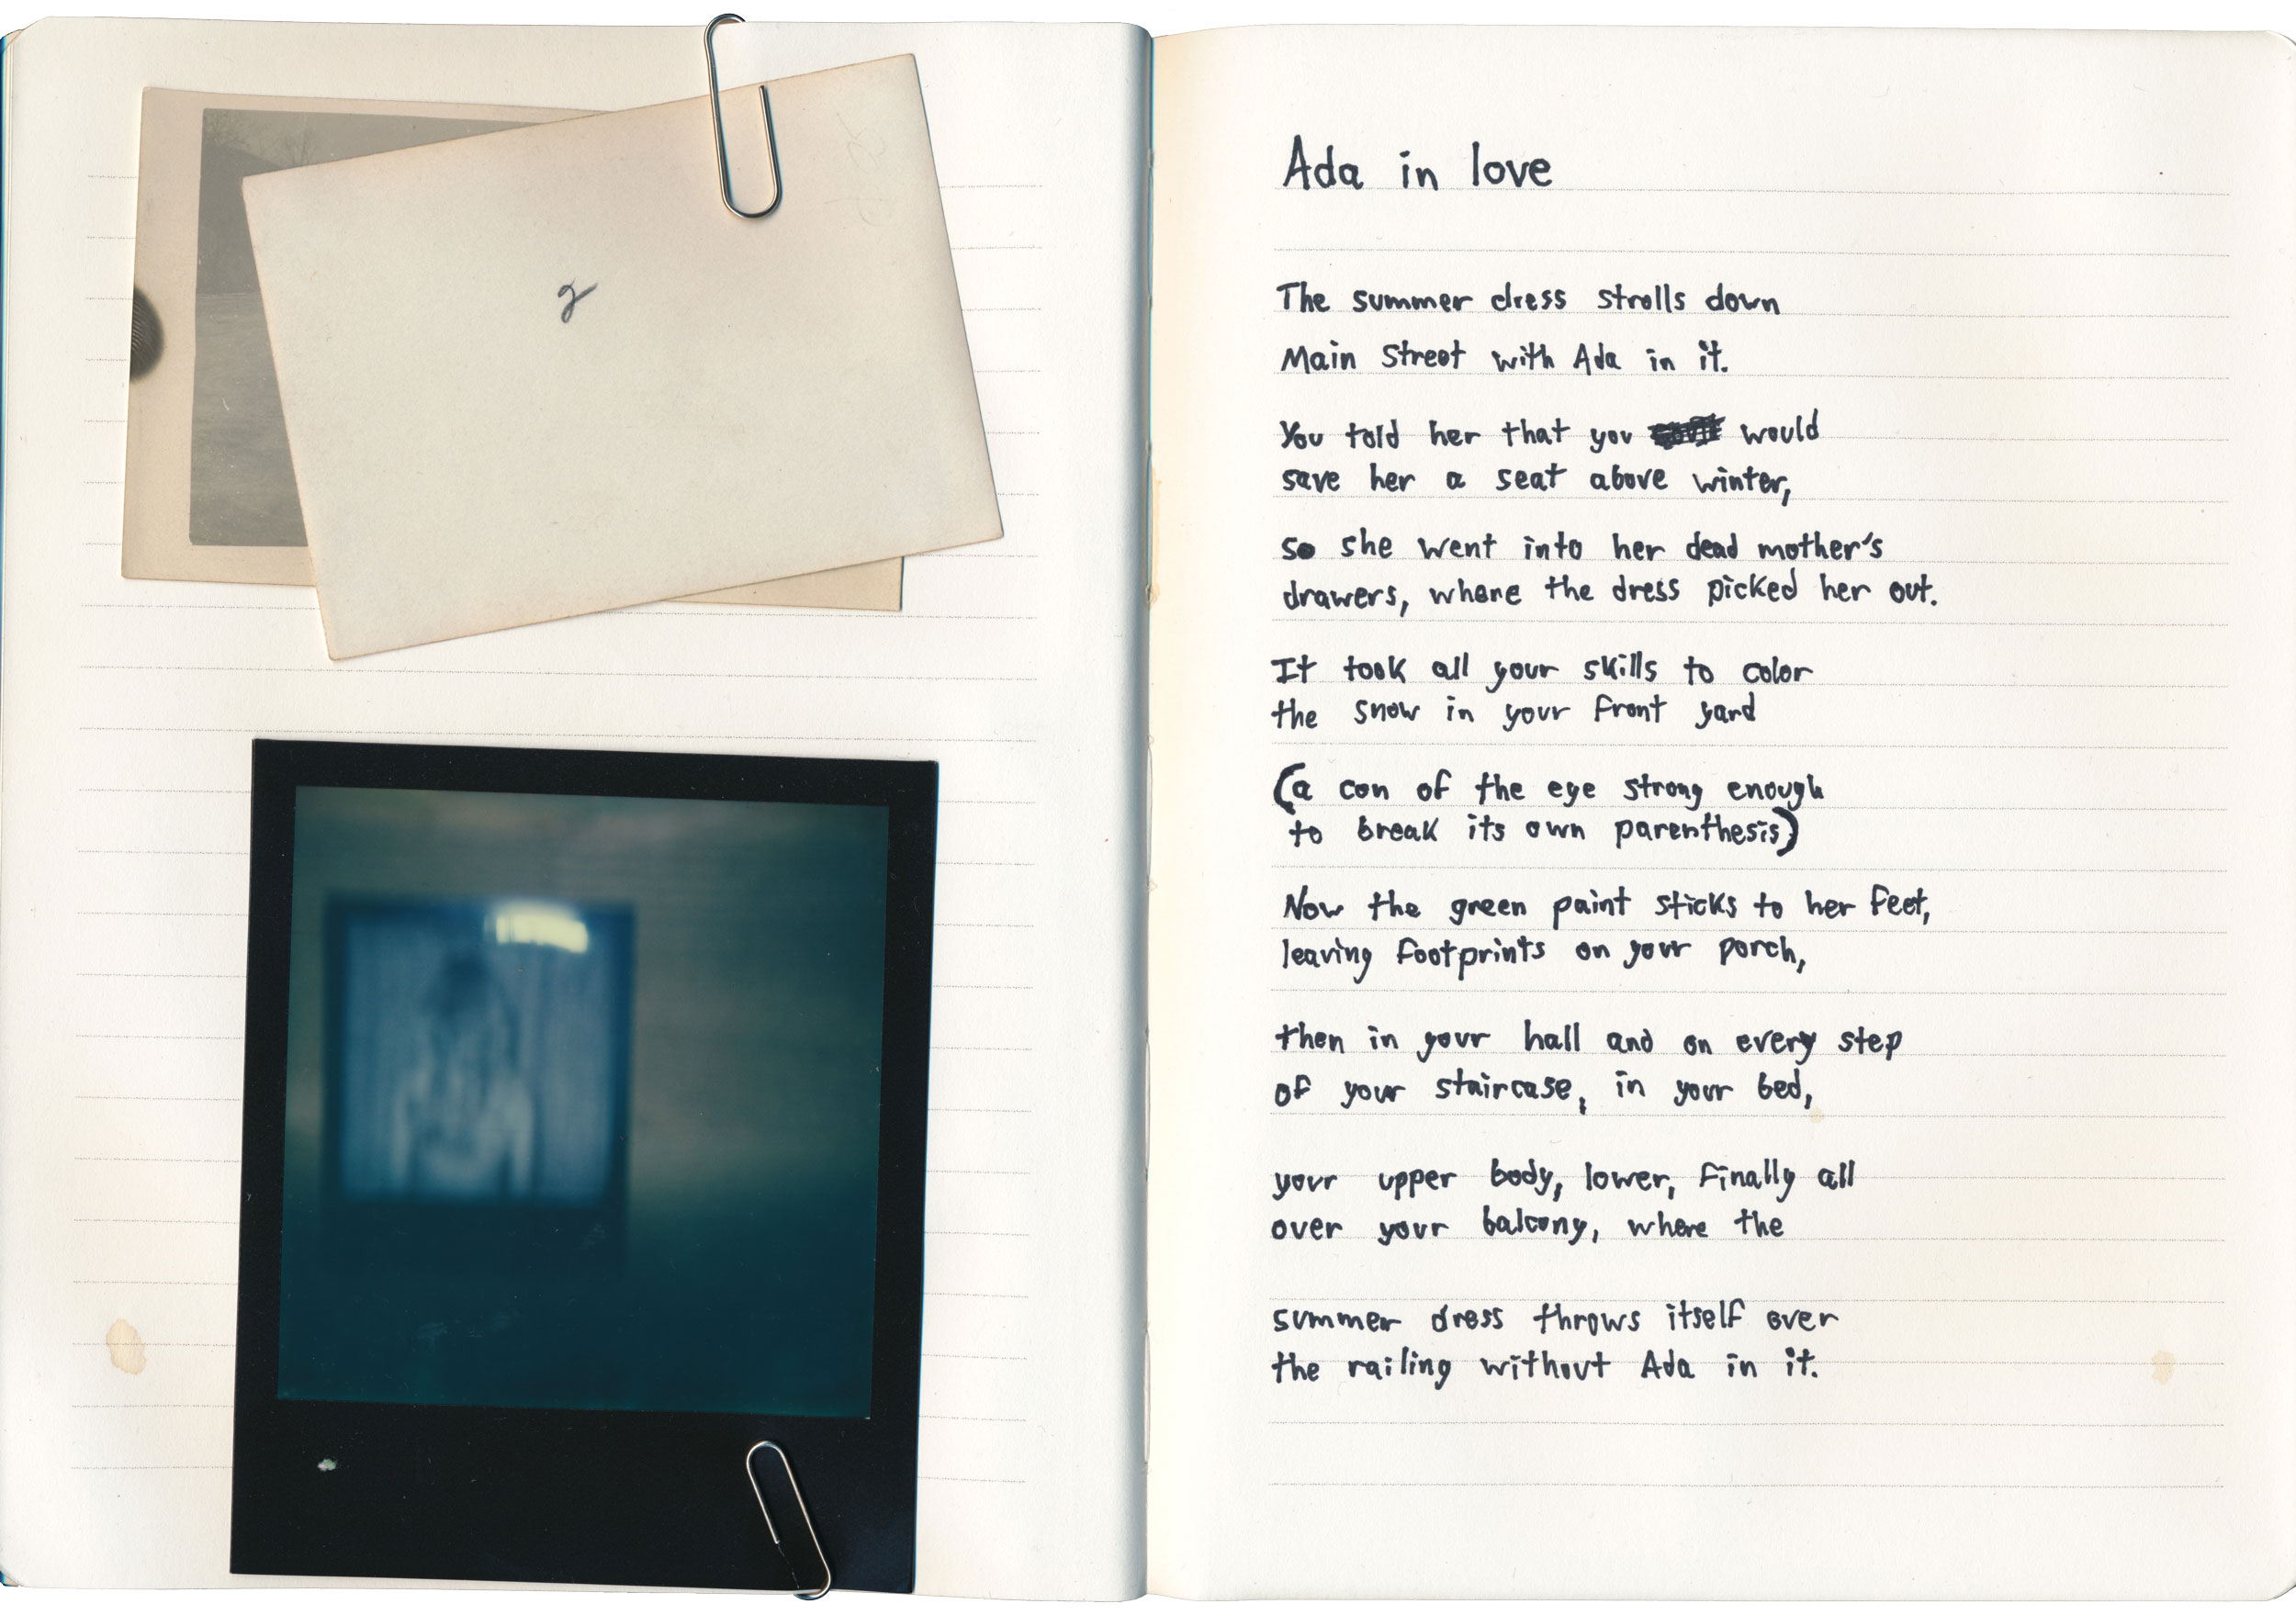 Archive of our collapse 4 - Ada in love.jpg